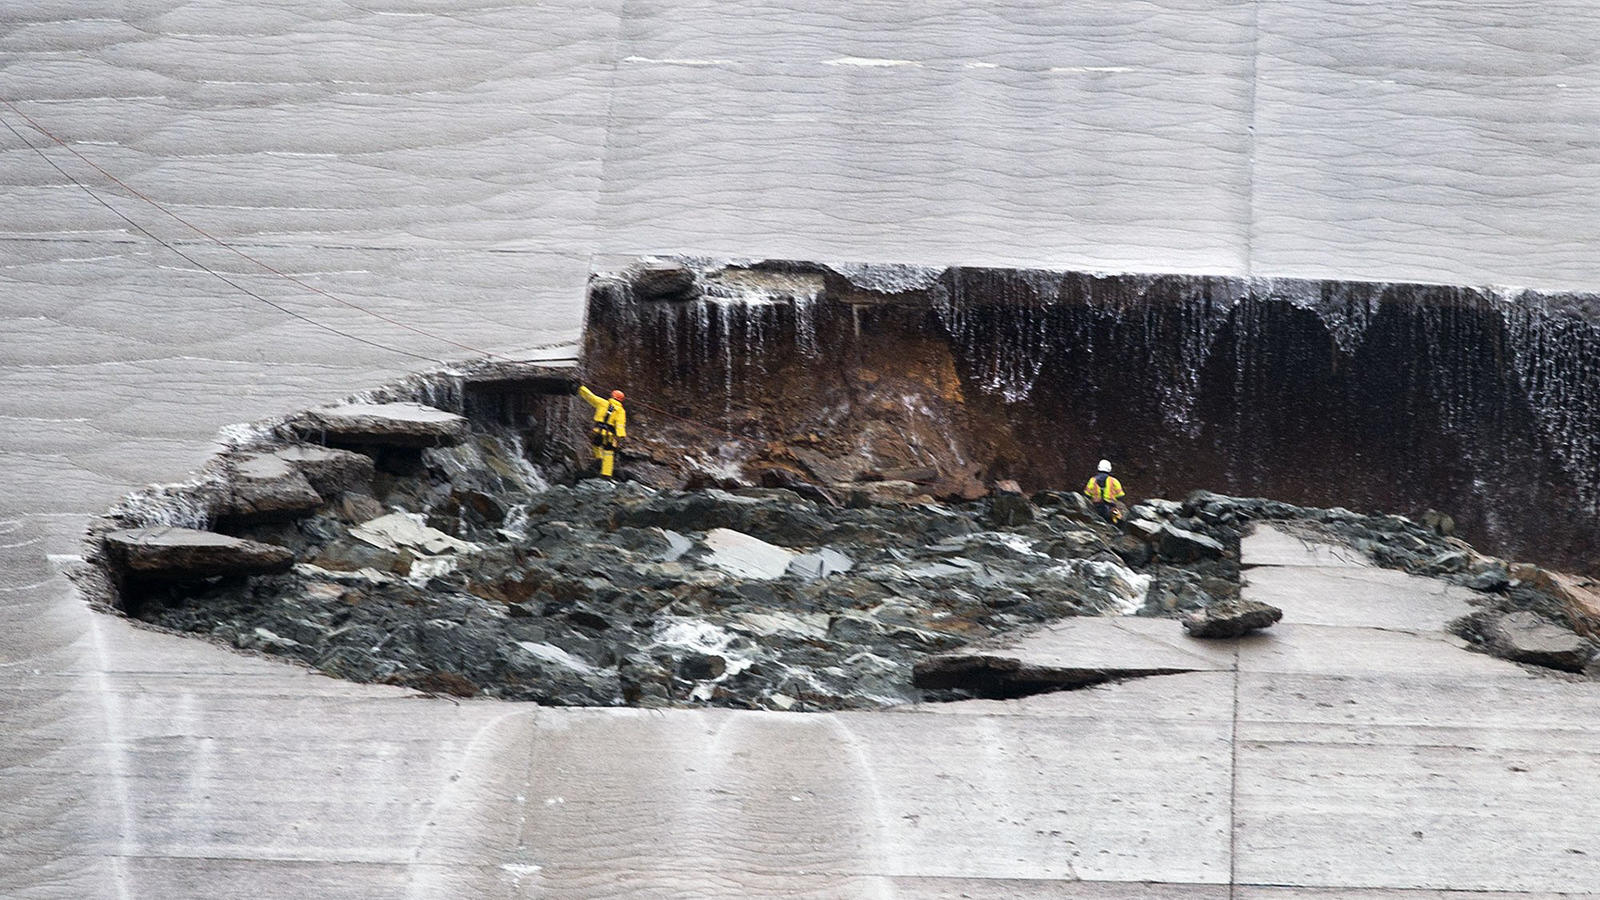 Major sinkhole on spillway at Lake Oroville